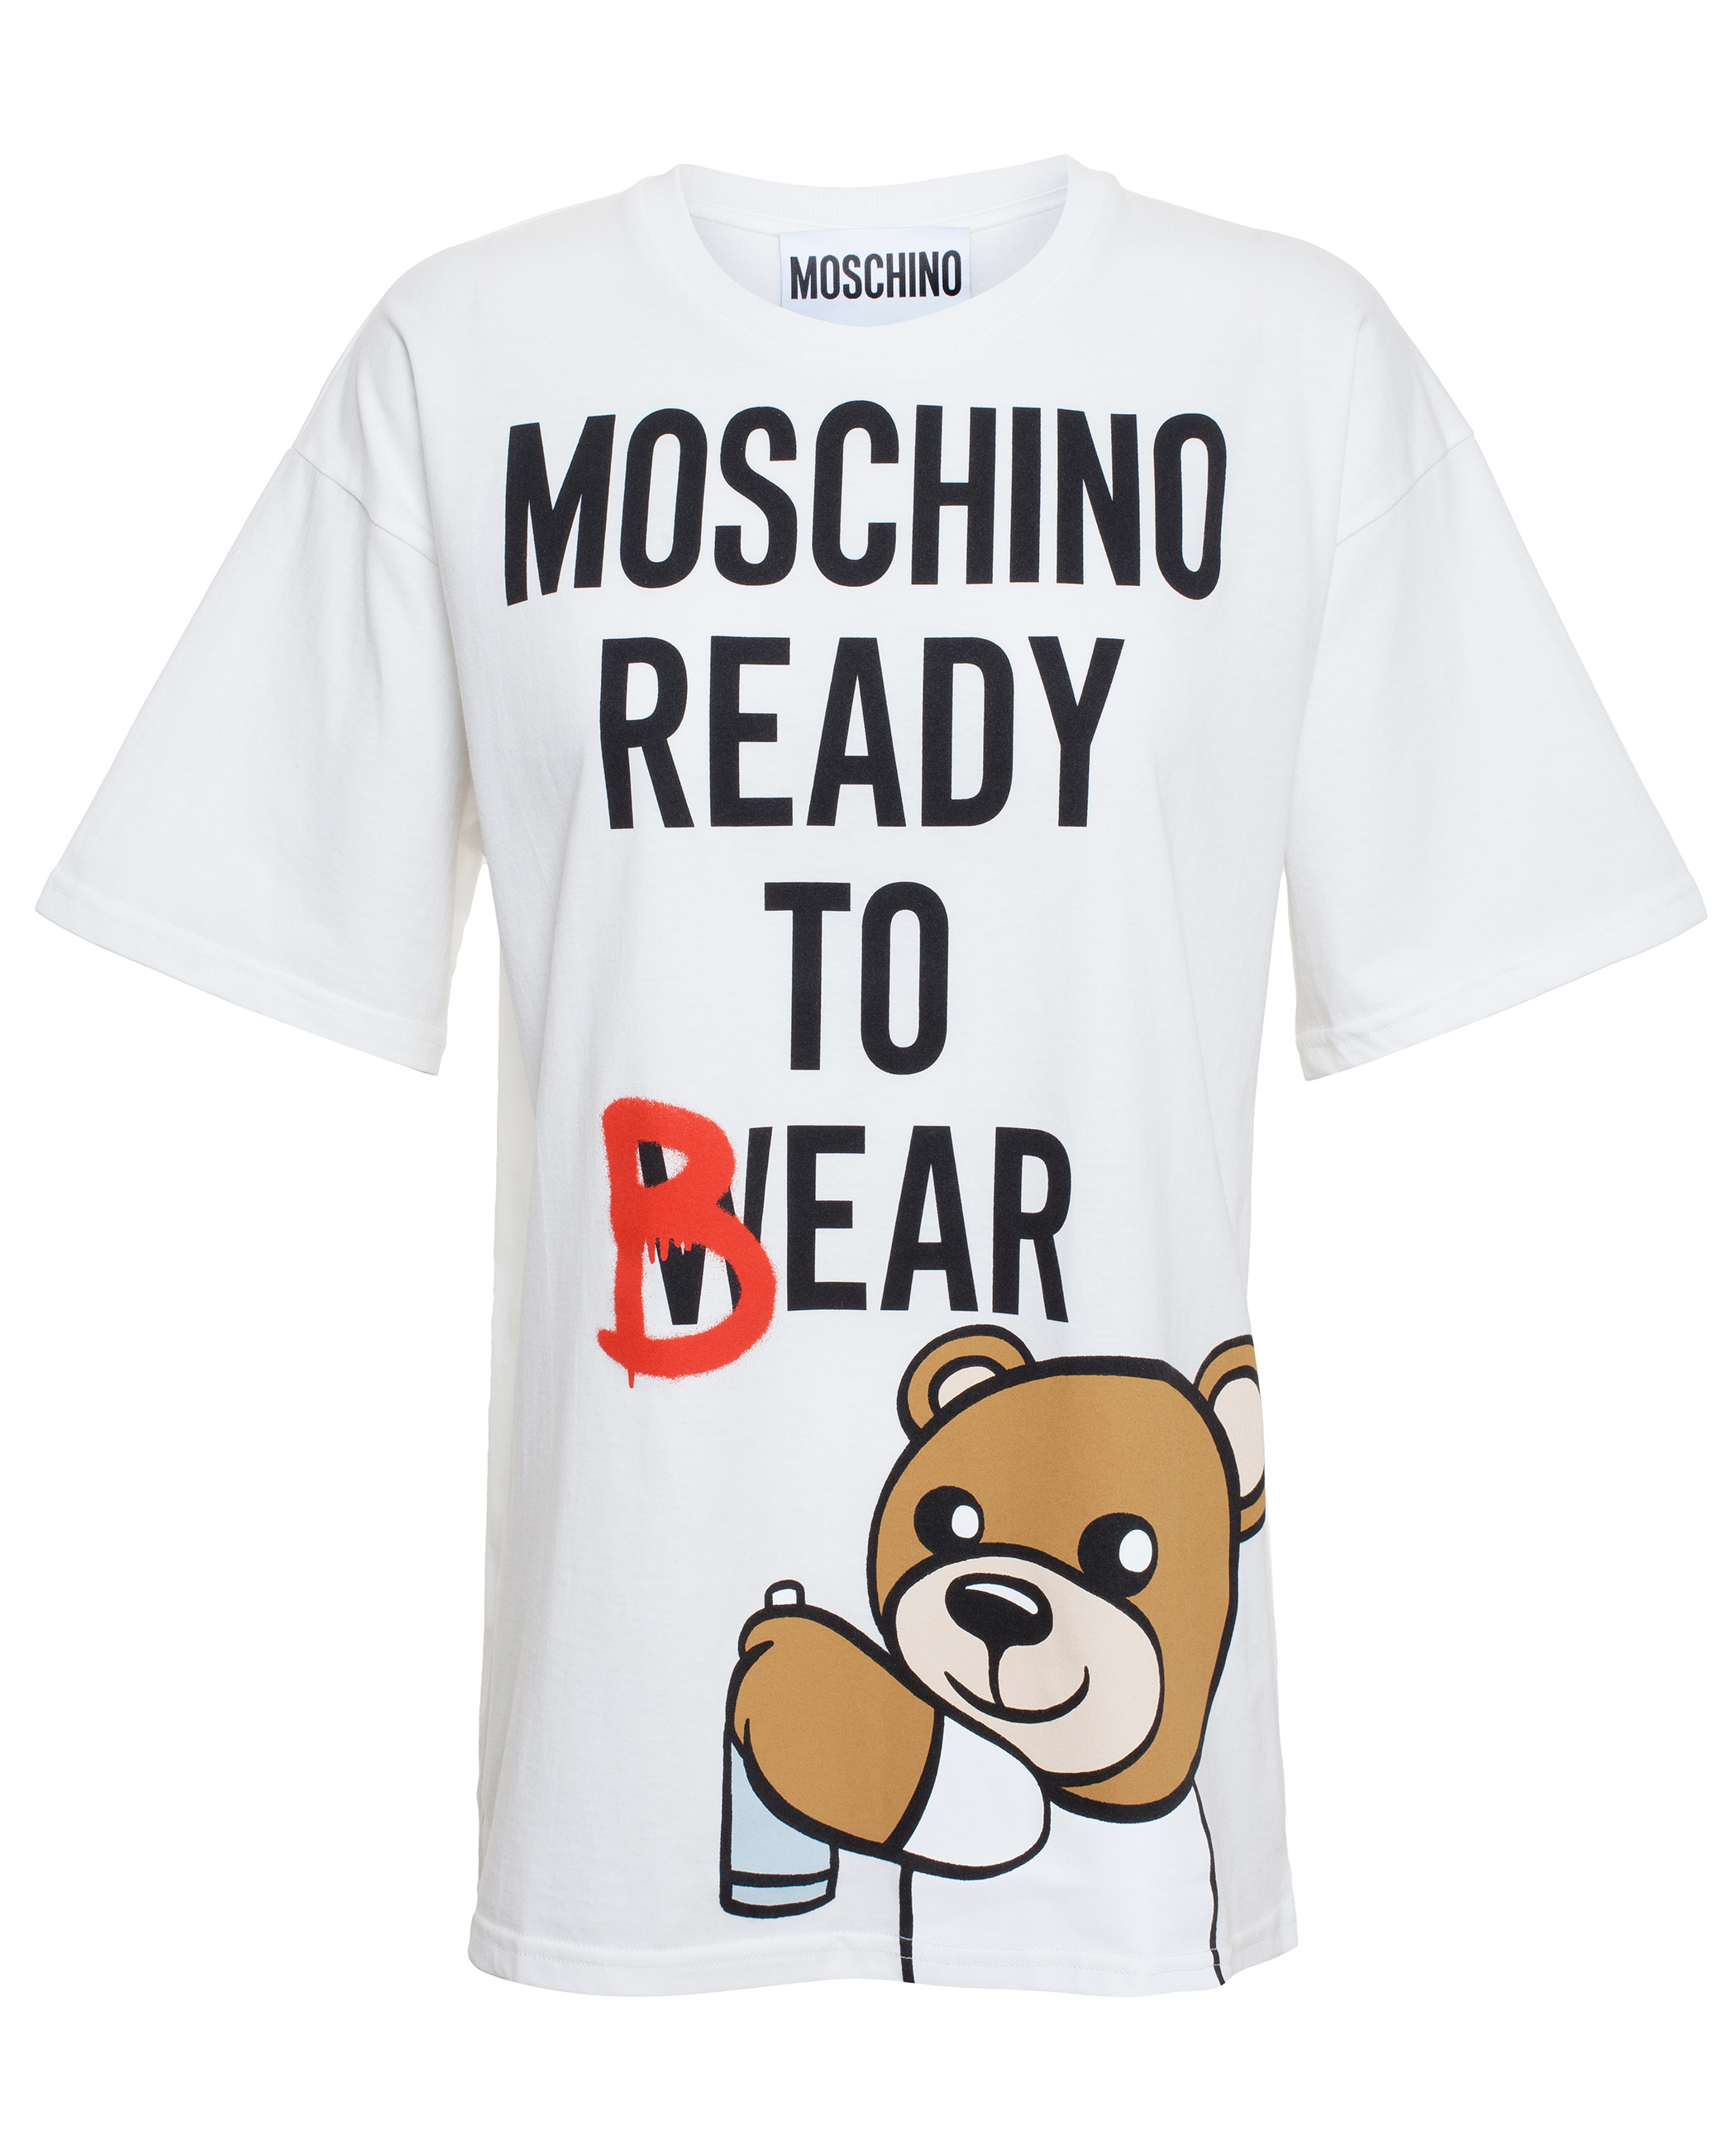 93d722e8722 Moschino Oversized Ready To Bear T-Shirt in White - Lyst